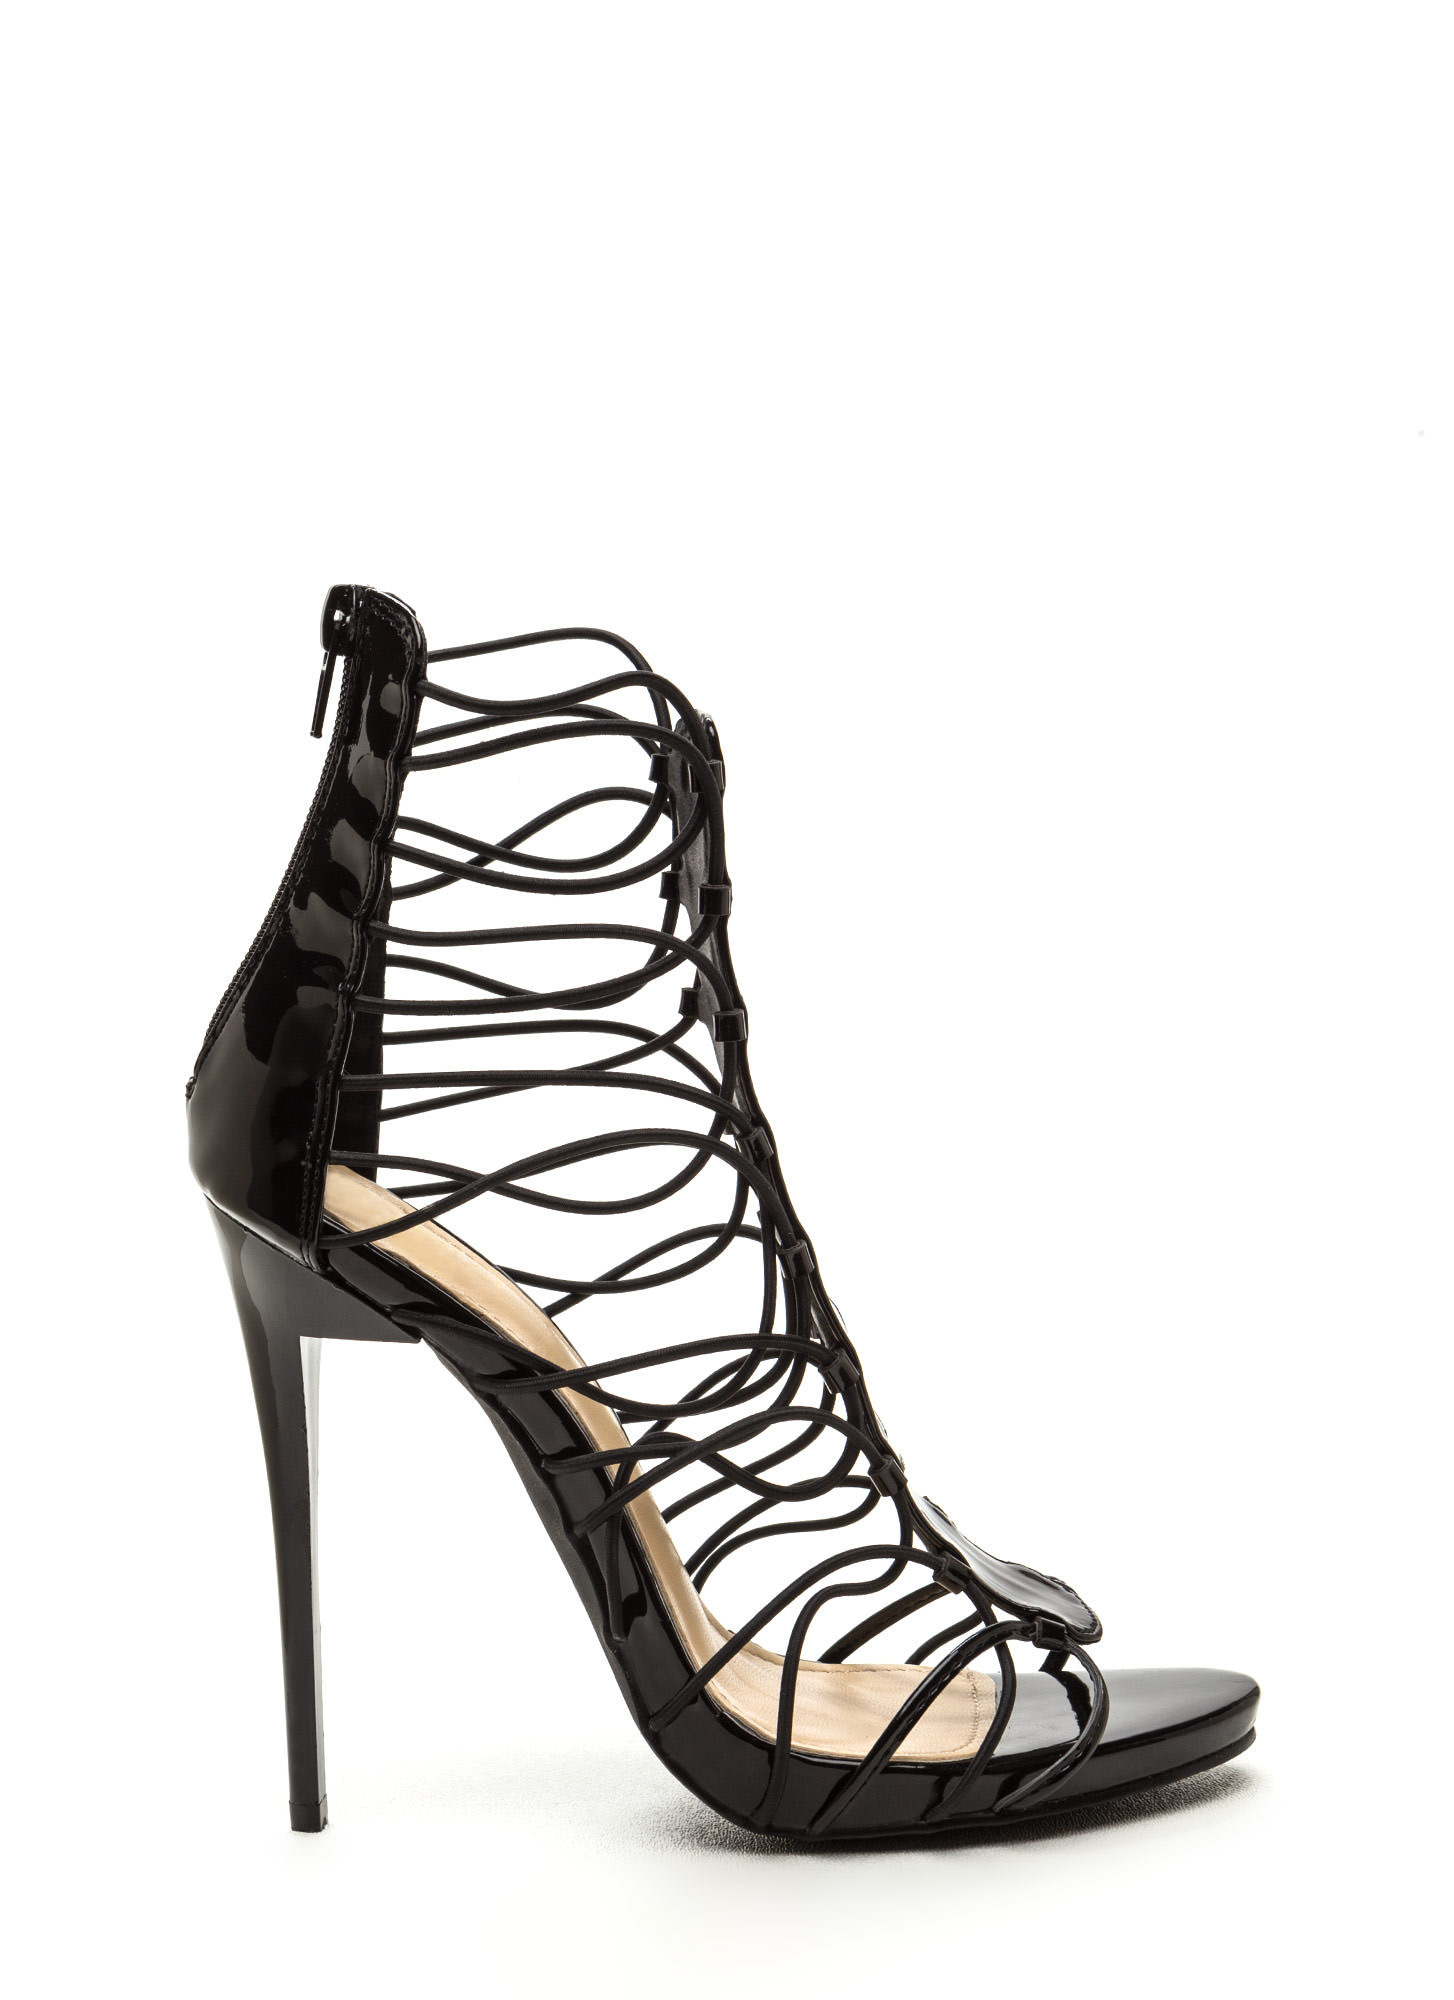 X-Off Caged Faux Leather Stiletto Heels BLACK (Final Sale)